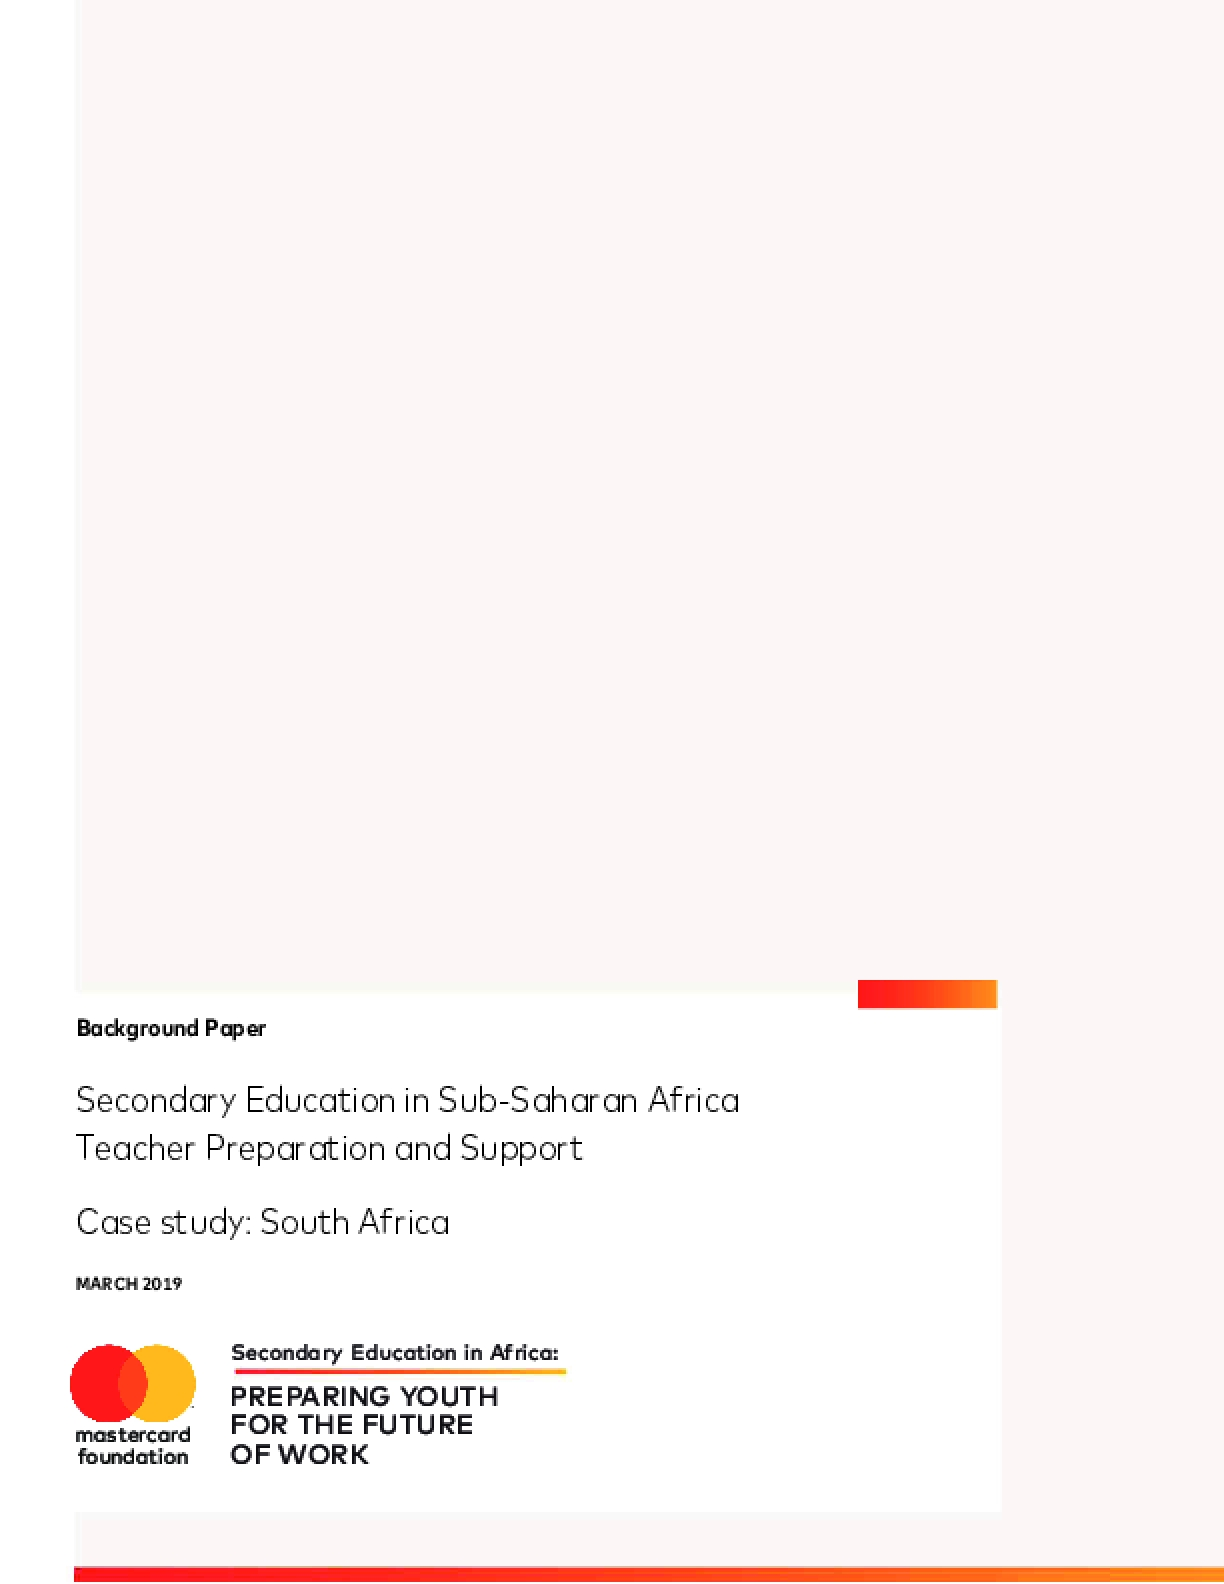 Secondary Education in Sub-Saharan Africa Teacher Preparation Deployment and Support Case Study: South Africa